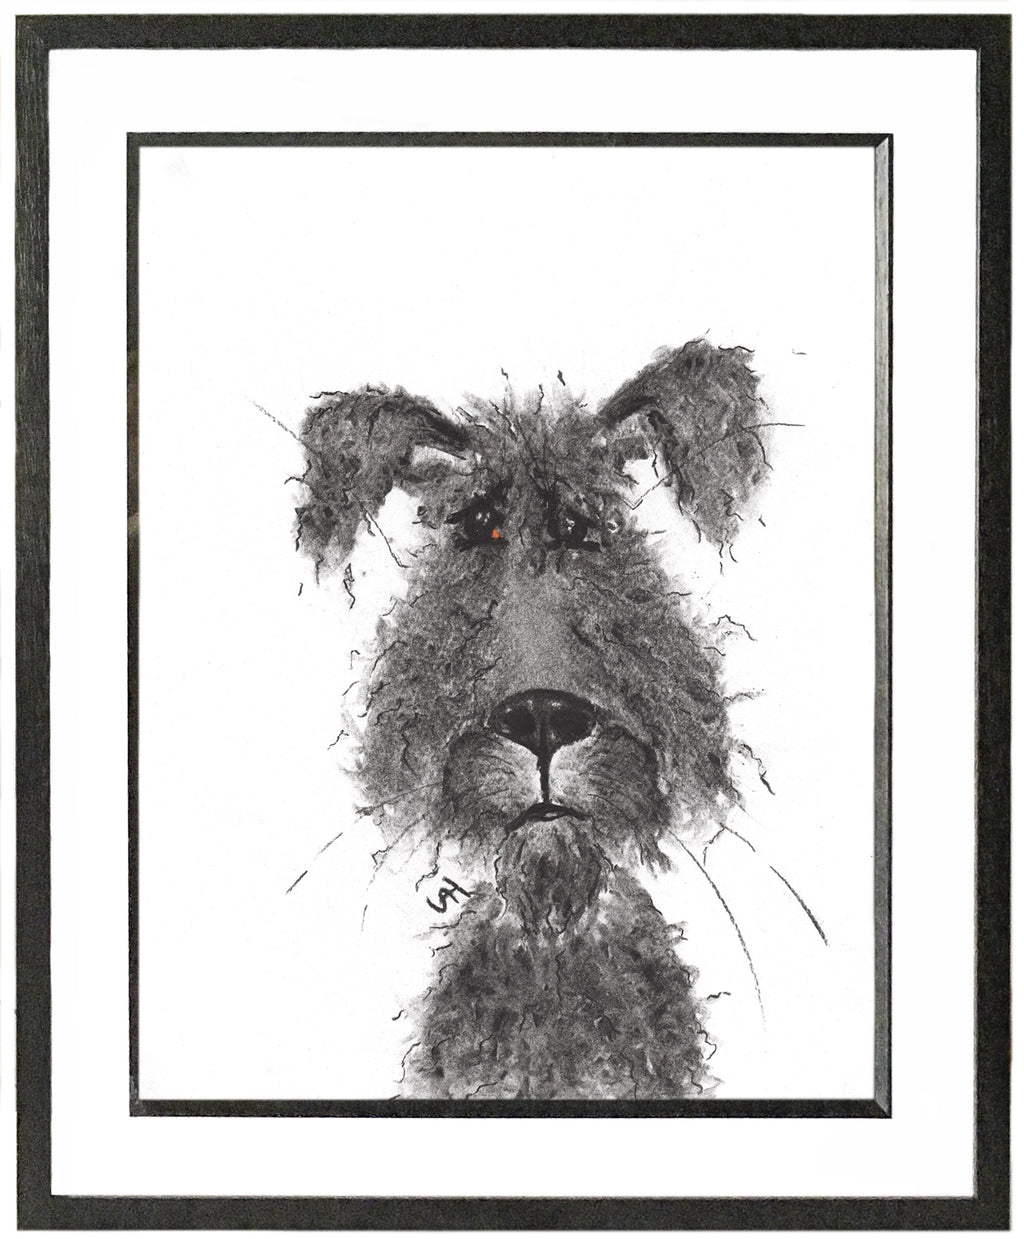 Benji Framed Shaggy Dog Illustration | GORGEOUS GEORGE